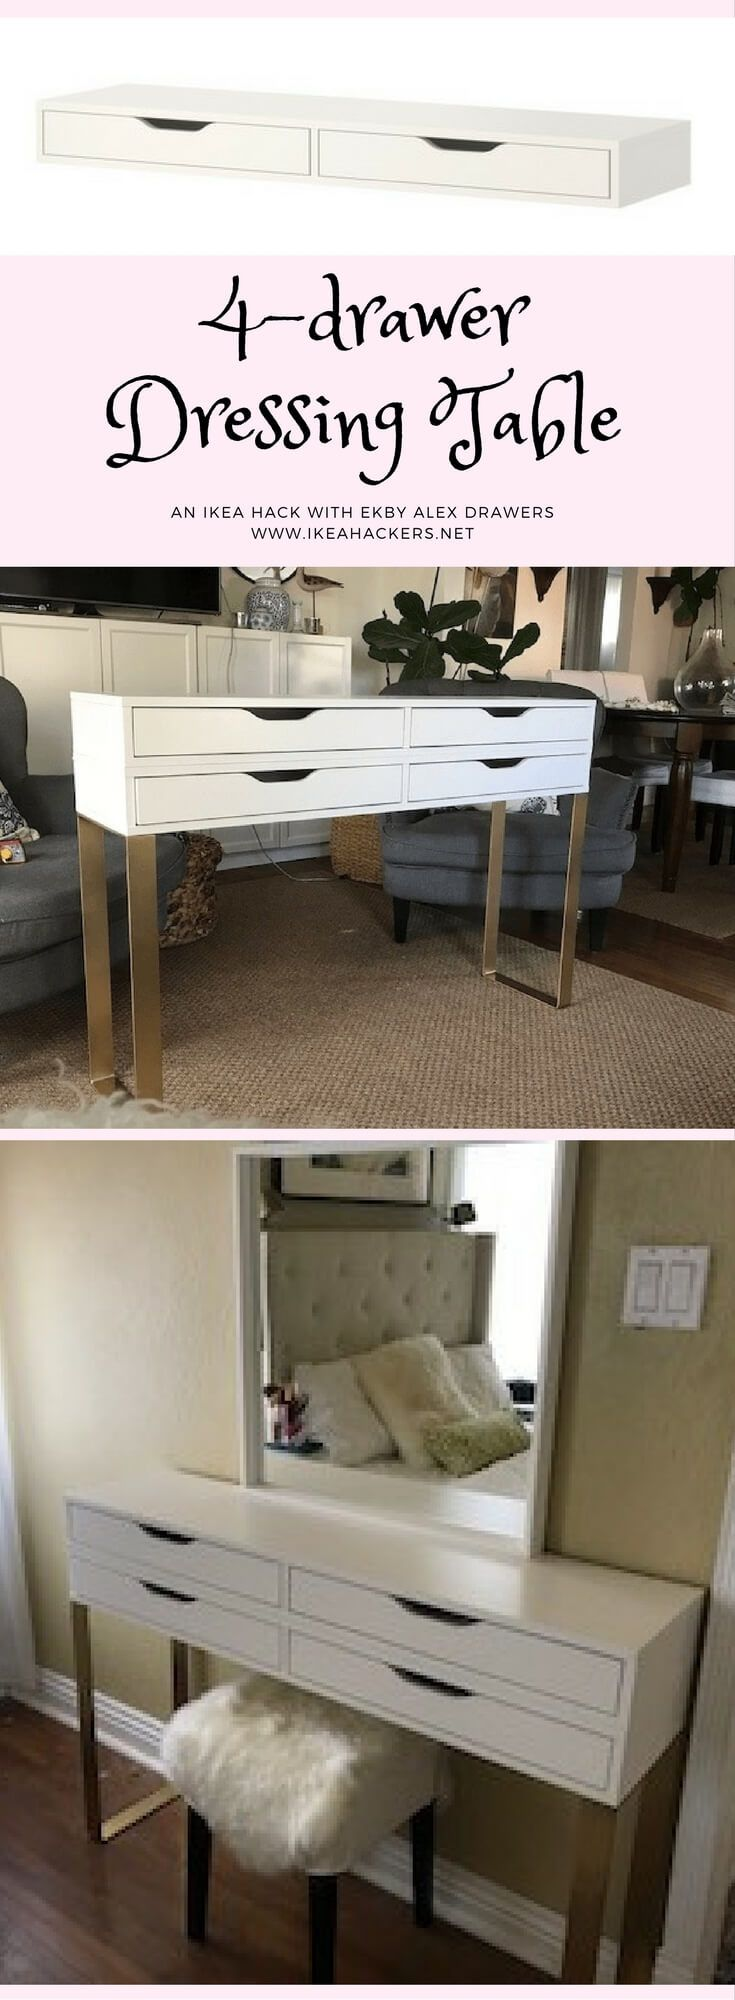 Modern Makeup Table With 4 Drawers For Storage Home Ikea